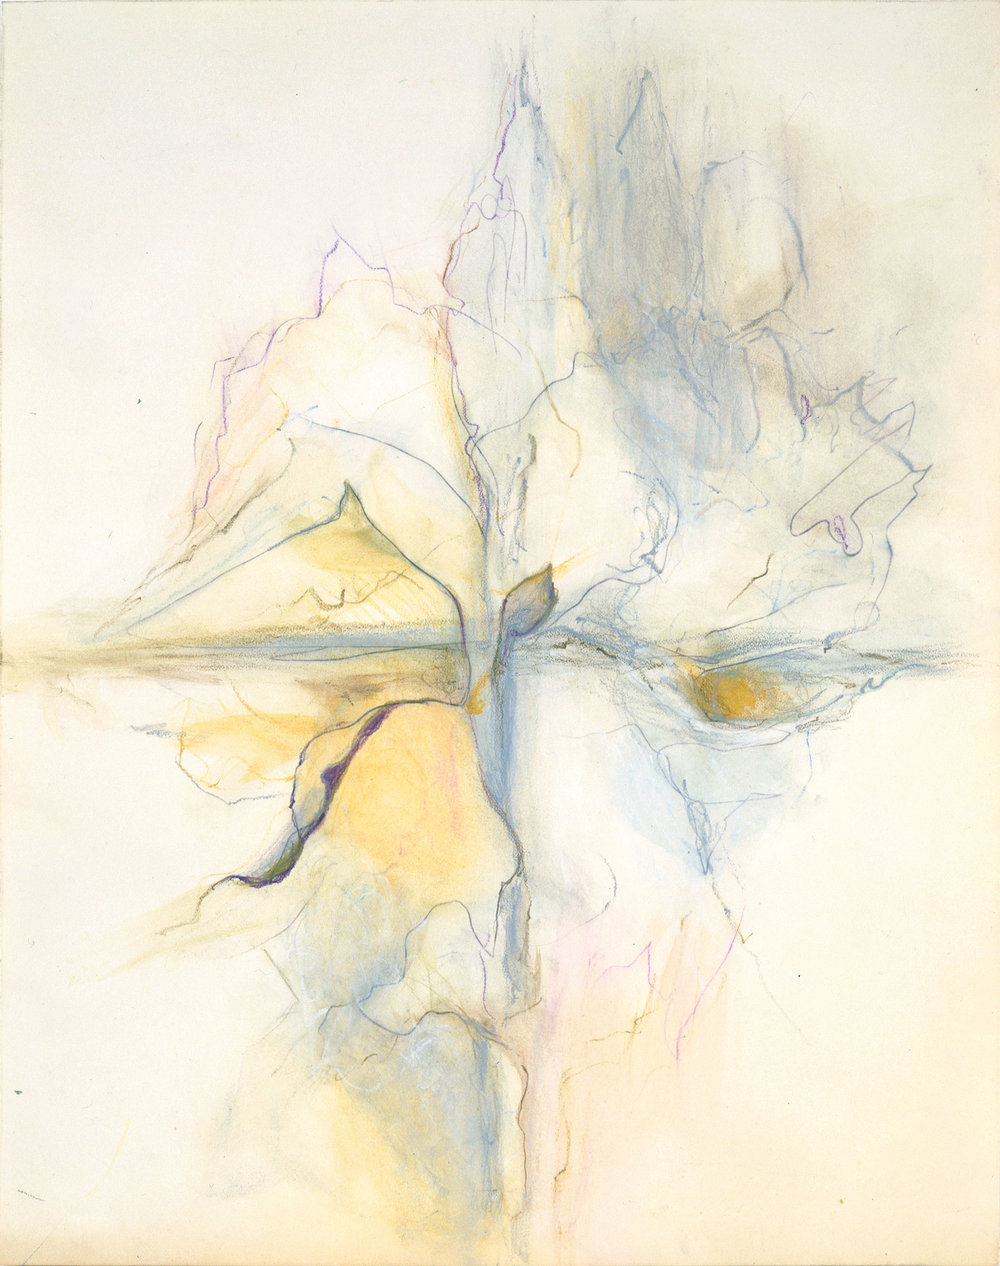 Hedda Sterne, Untitled, 1993, Colored pencil, pastel on paper, 14 1/2 in. x 11 1/2 in.